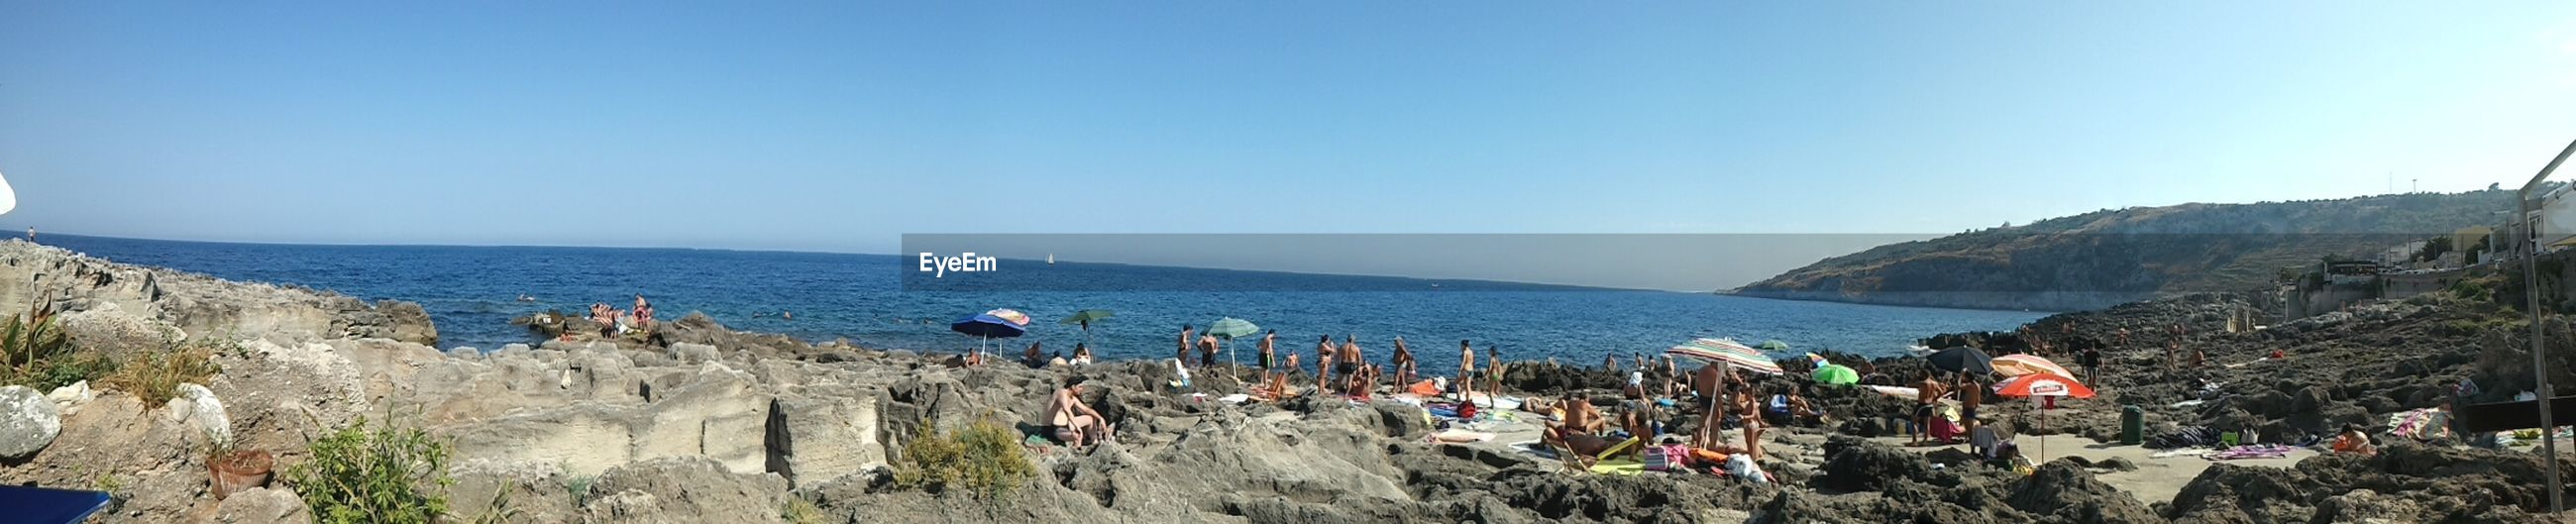 Panoramic view people standing on rocky shore